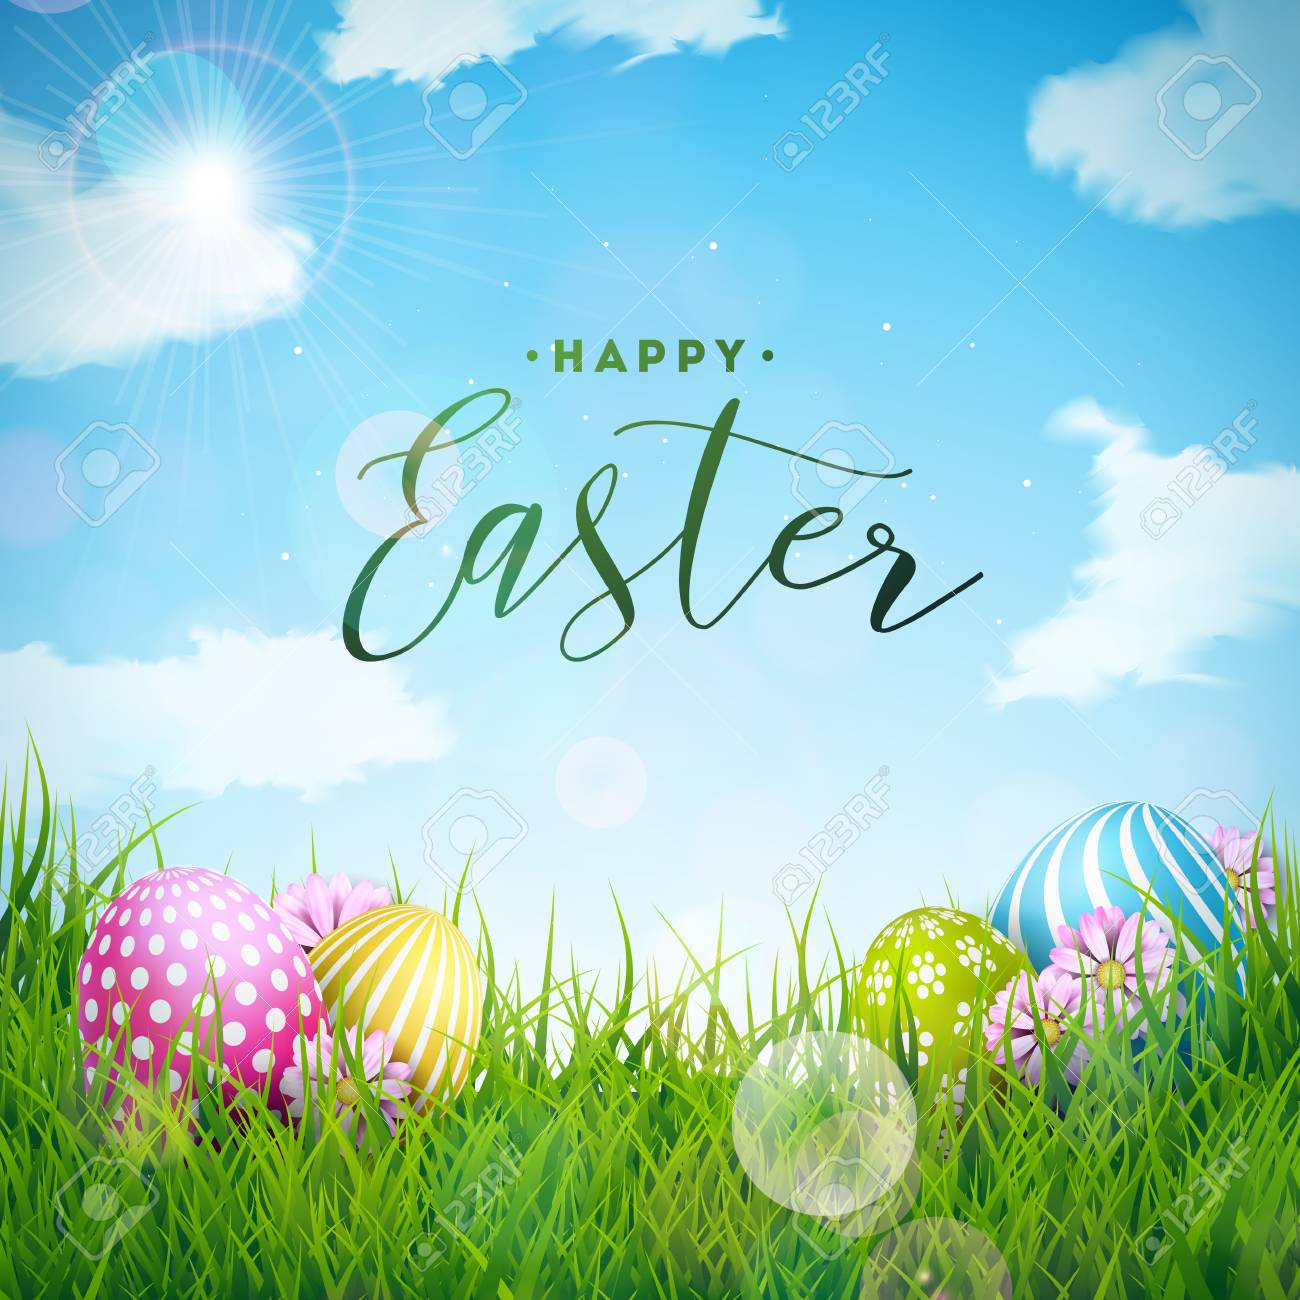 Vector Illustration Of Happy Easter Holiday With Painted Egg ...